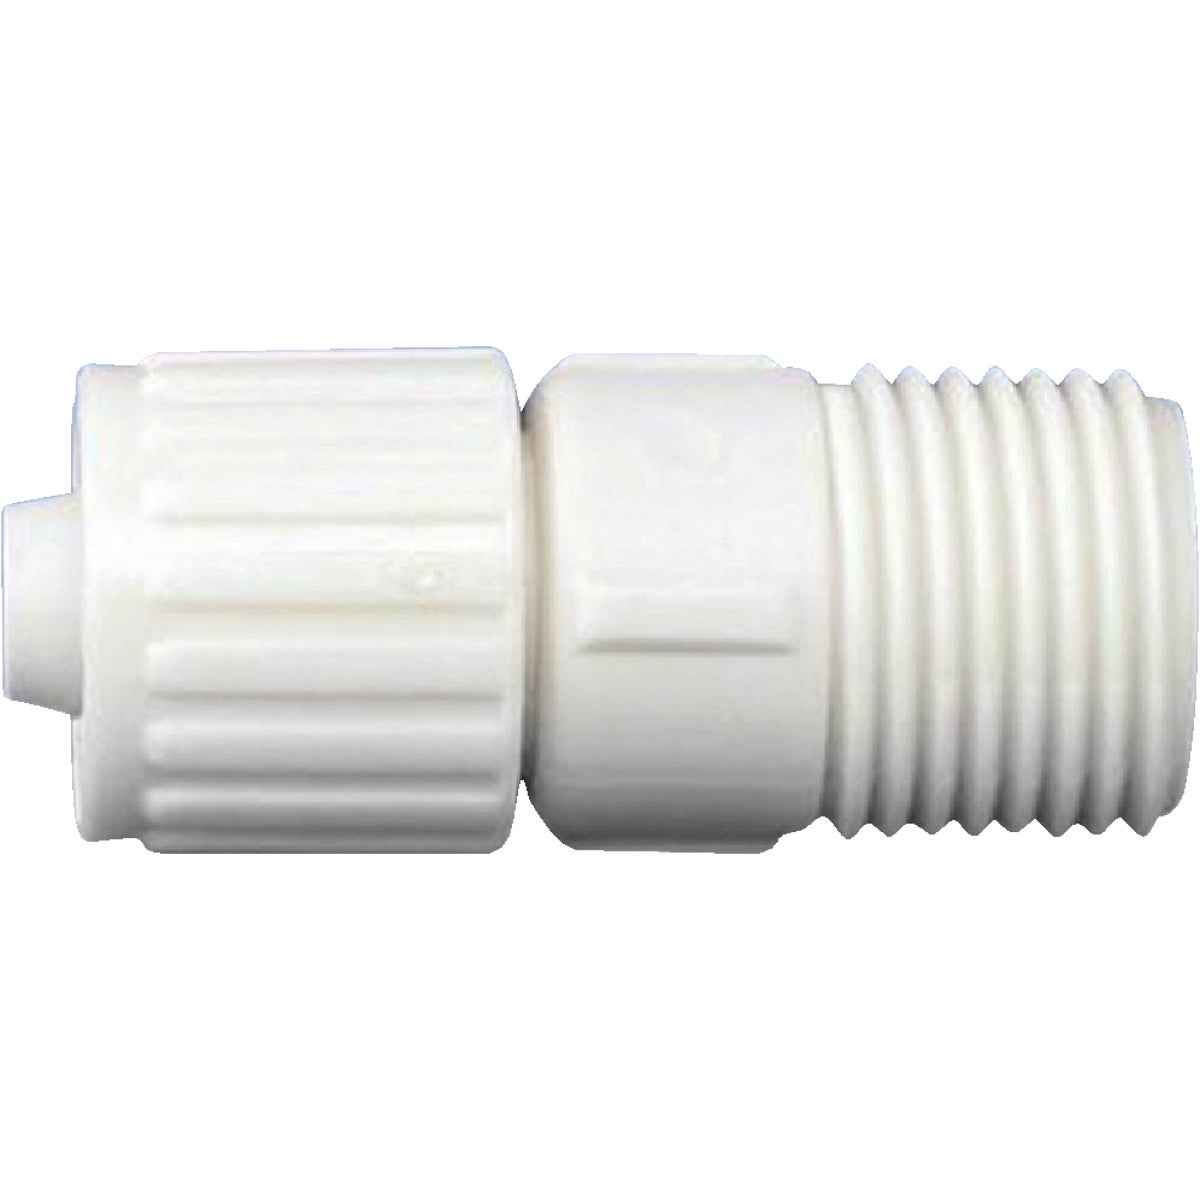 3/8X1/2MPT ADAPTER - 16870 by Flair It West